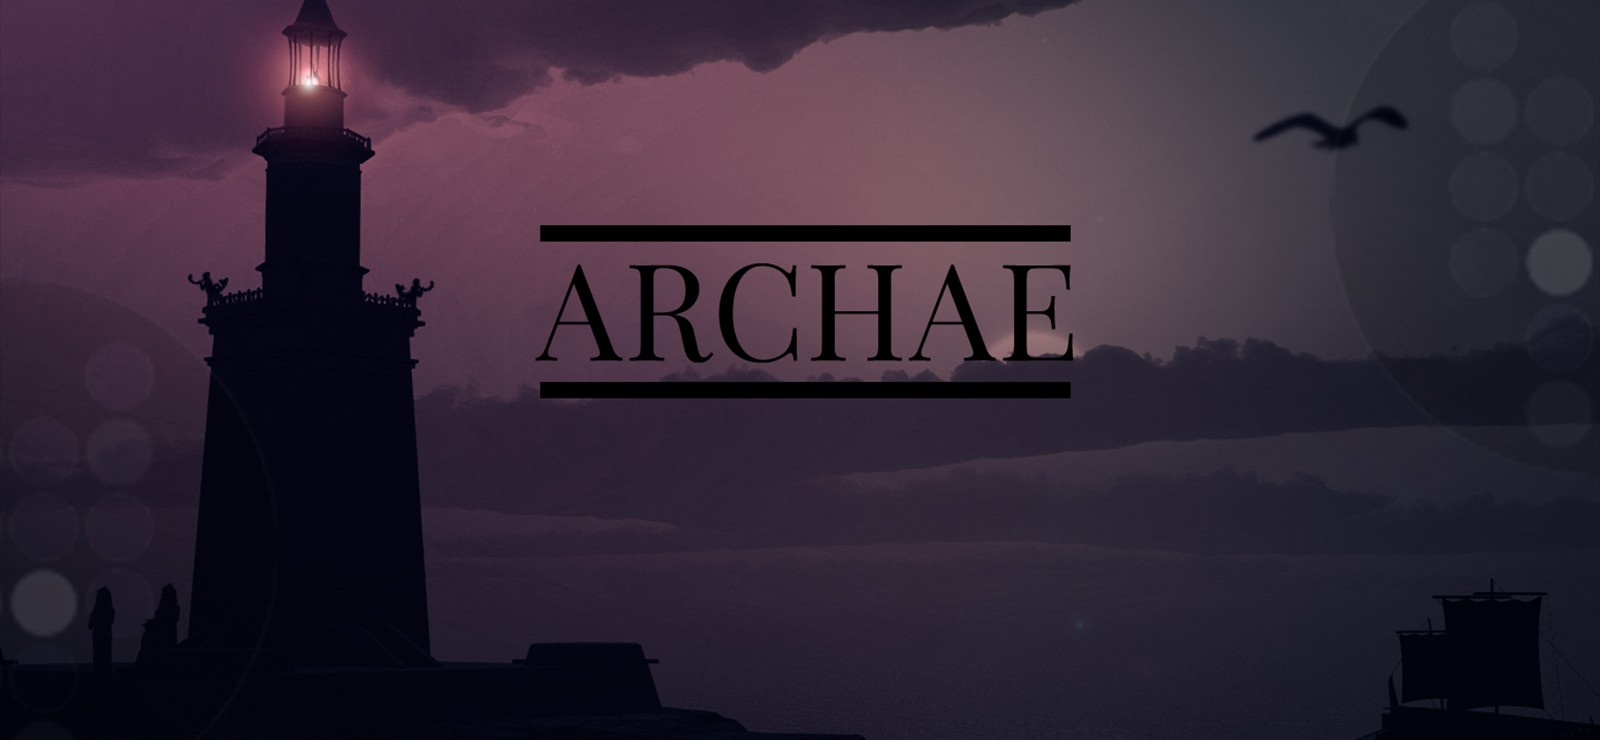 archae_pharos_night